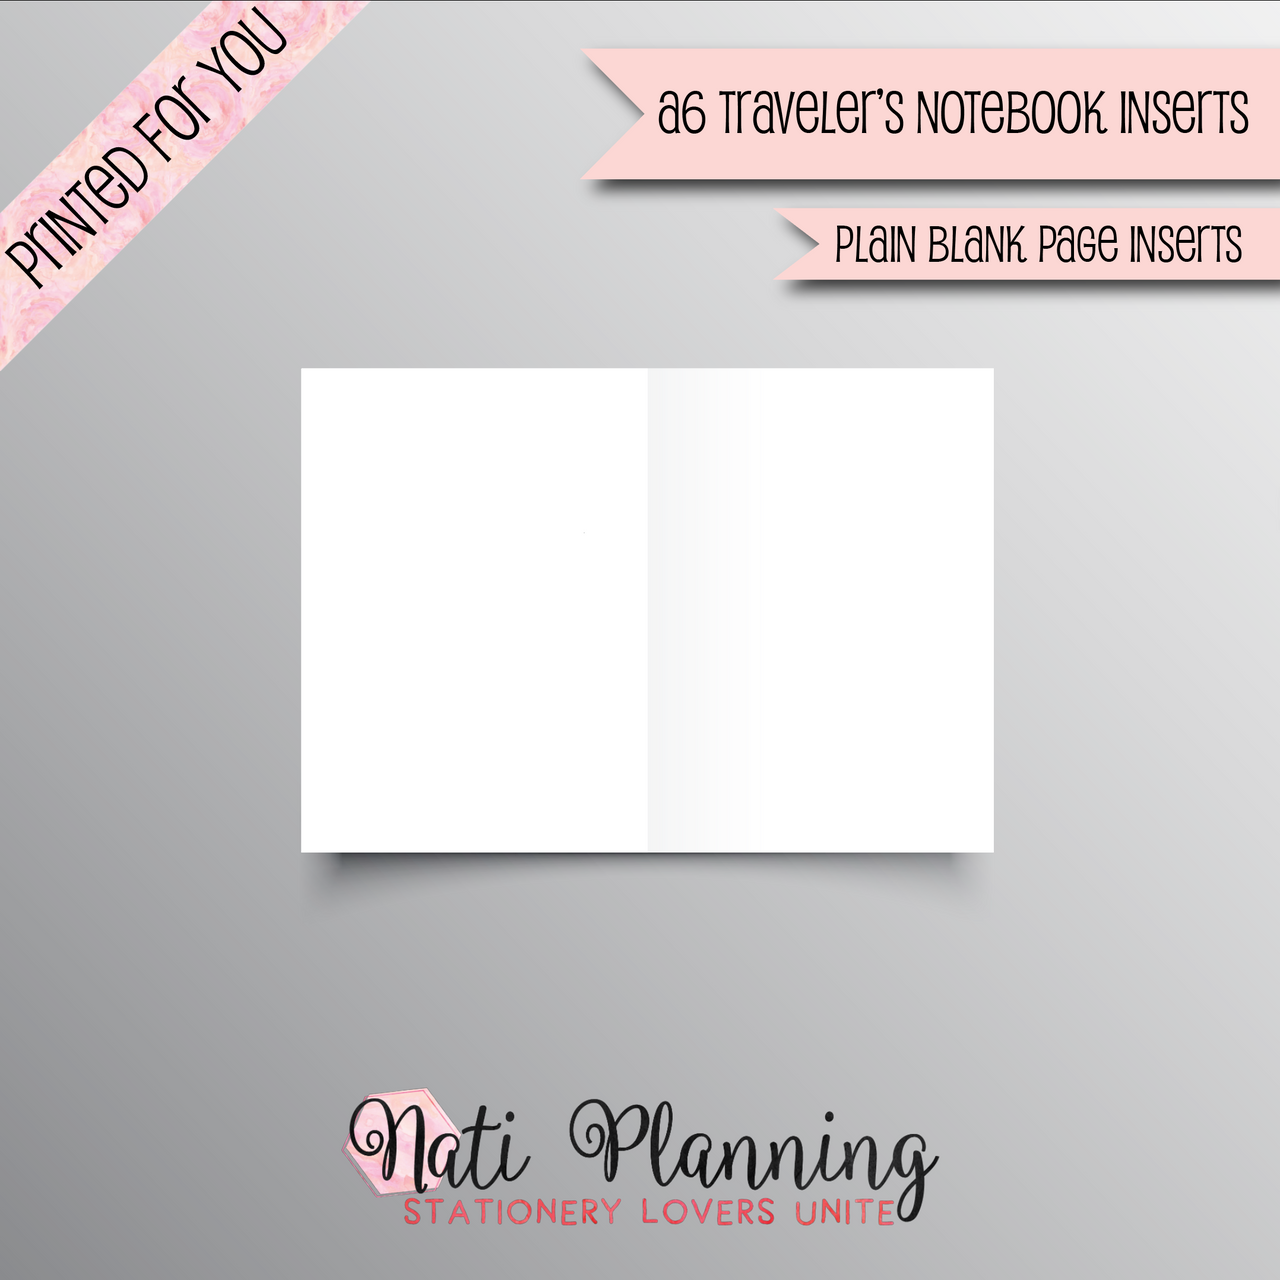 Plain Blank Page TN - A6 NO.3 SIZE INSERTS